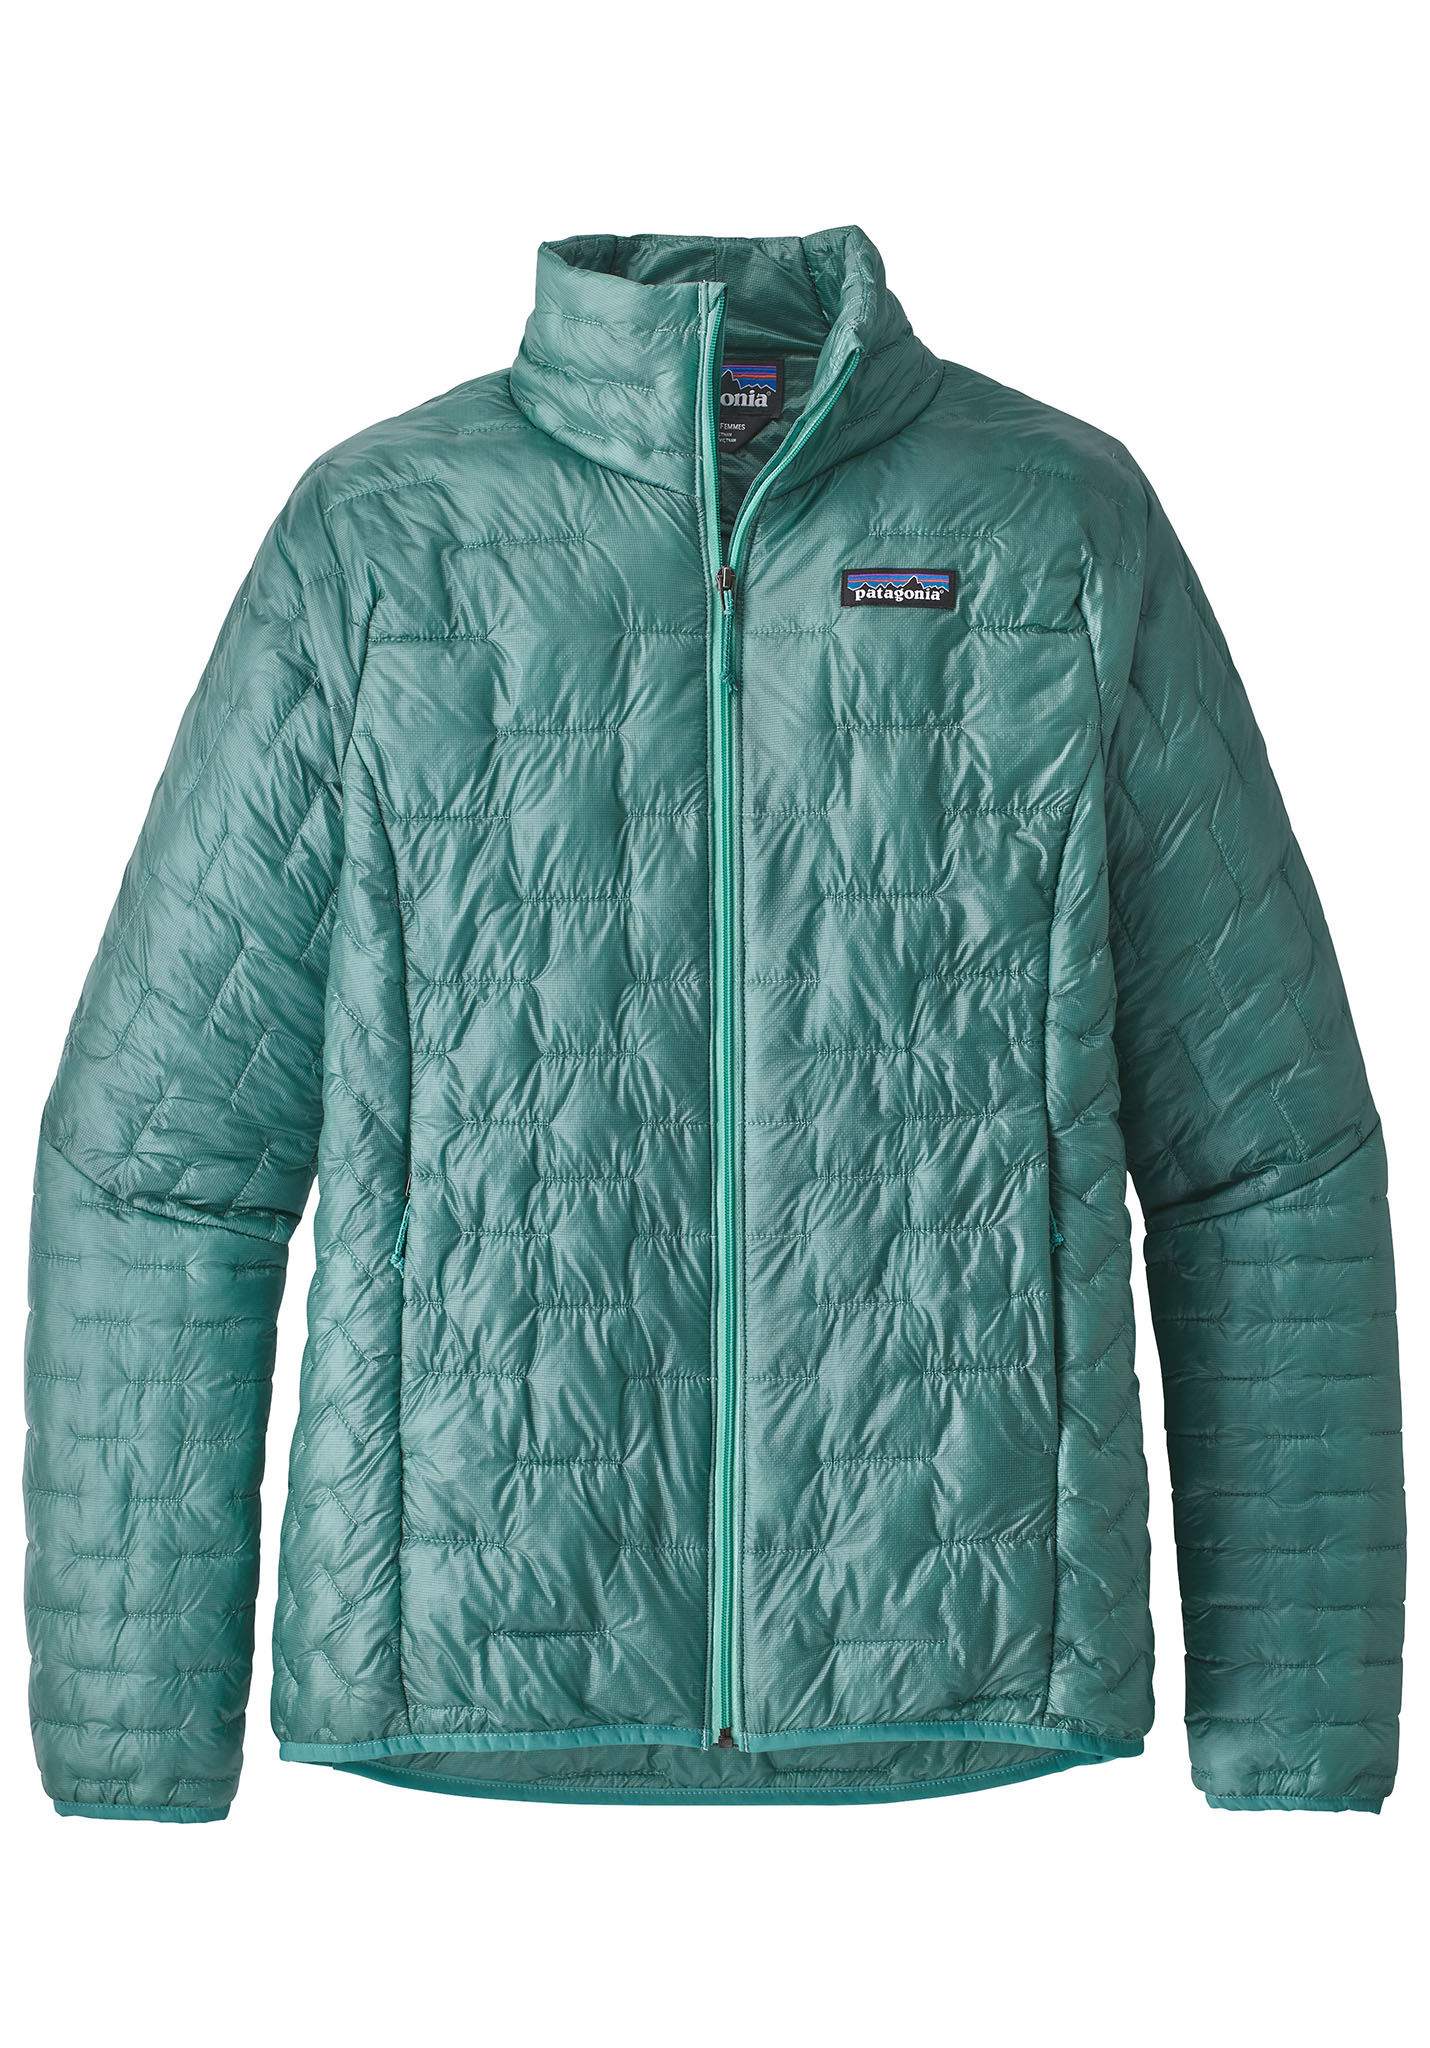 0ca7d2c3de7 PATAGONIA Micro Puff - Outdoor Jacket for Women - Green - Planet Sports